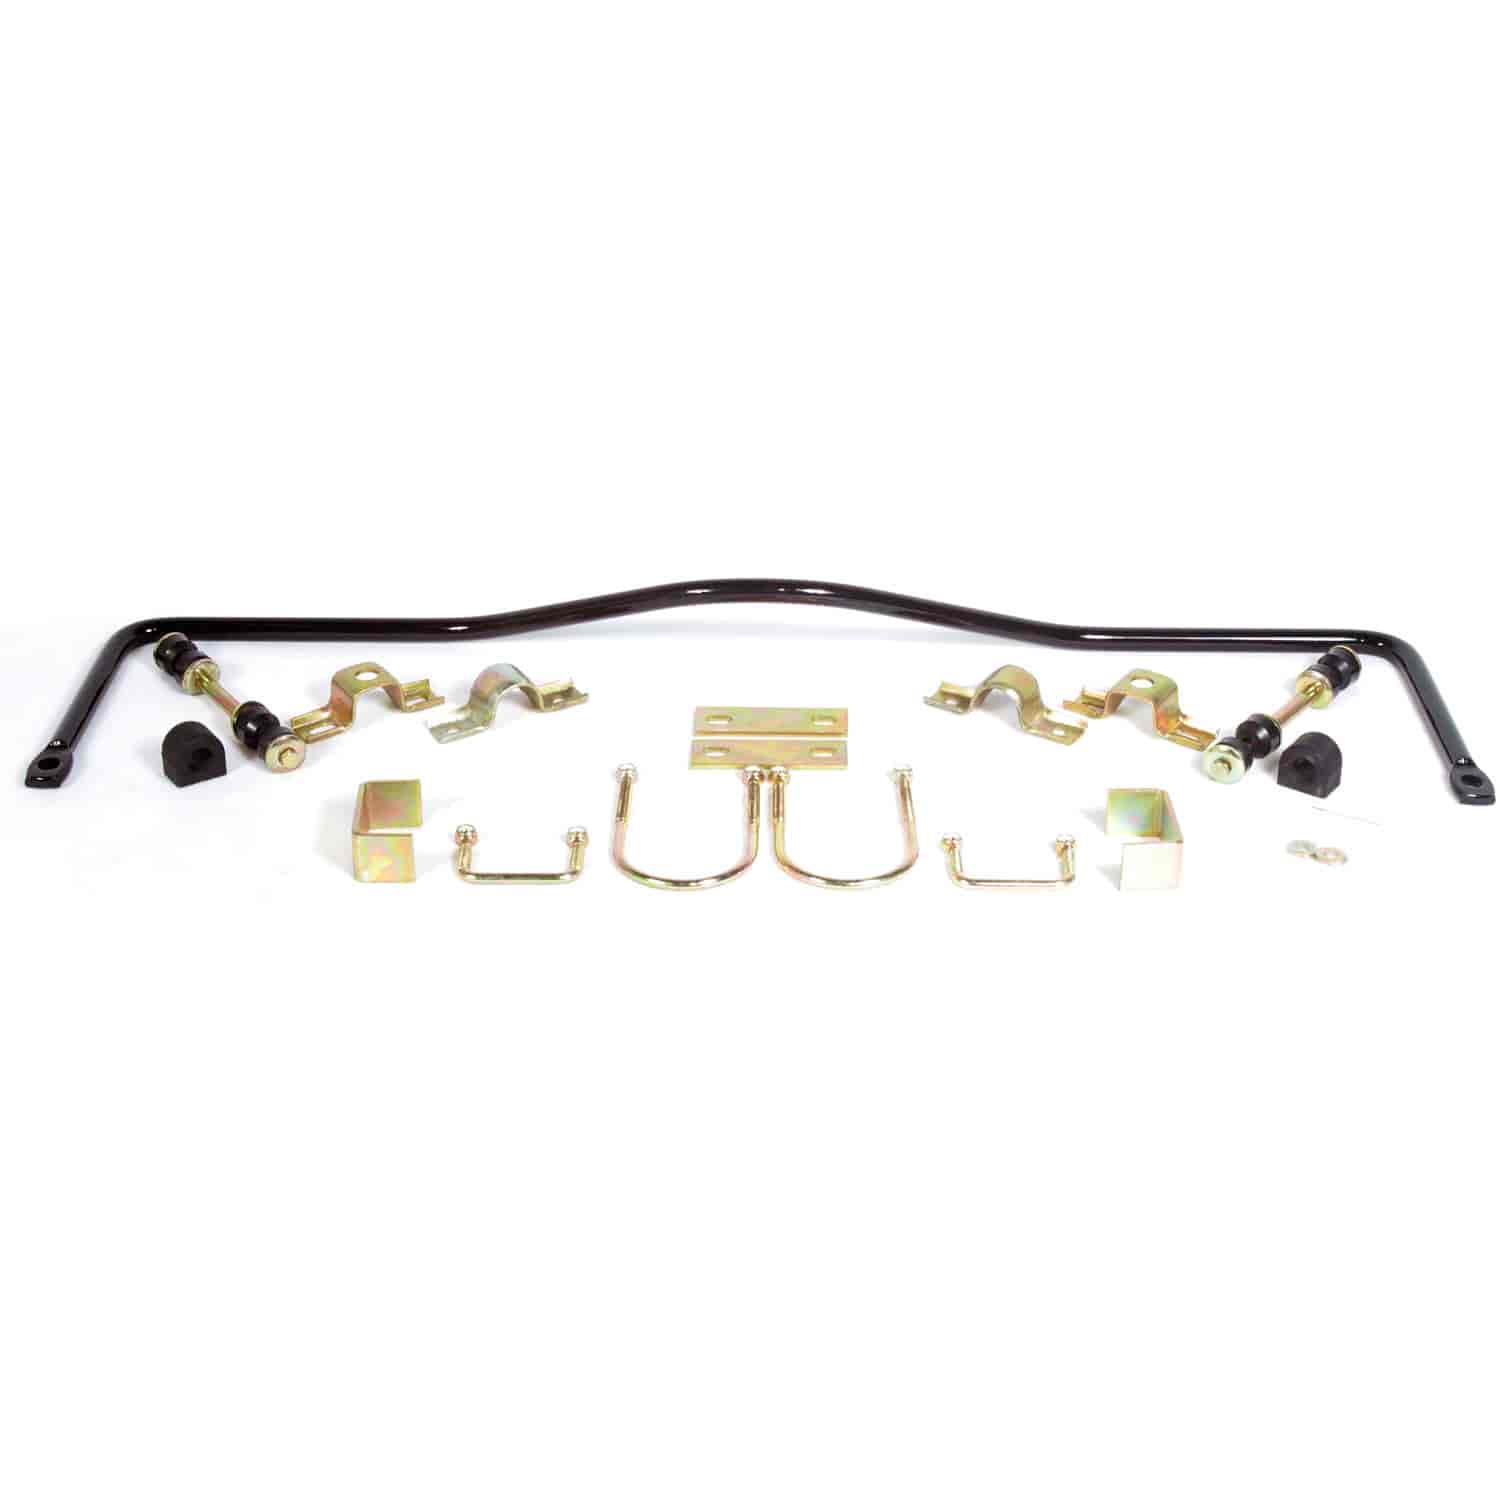 Addco 916 3 4 Rear Sway Bar 67 Chevy Ii Nova